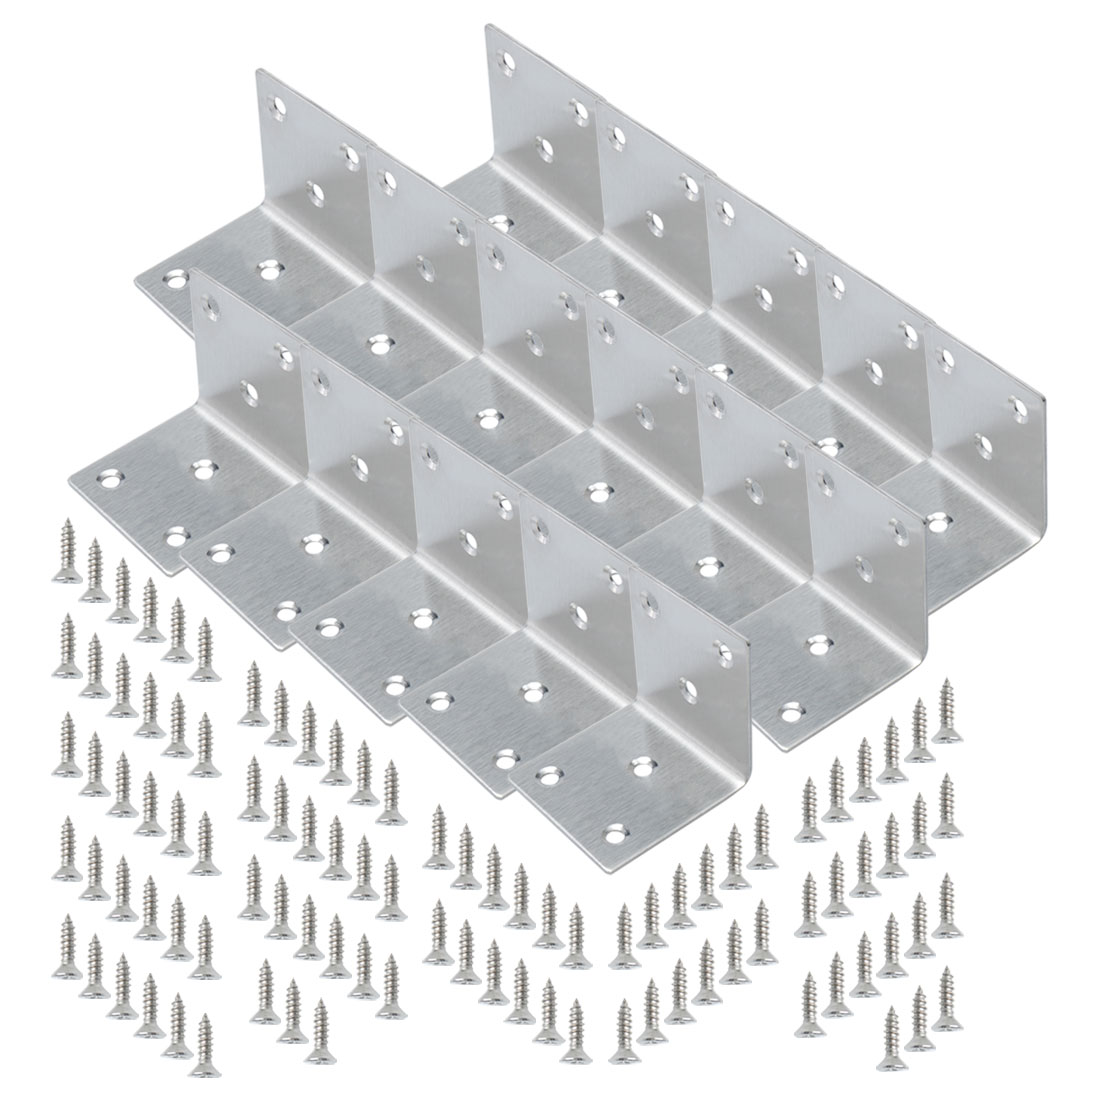 Angle Bracket Stainless Steel Brace Connection Fastener w Screw 50x50mm, 16pcs